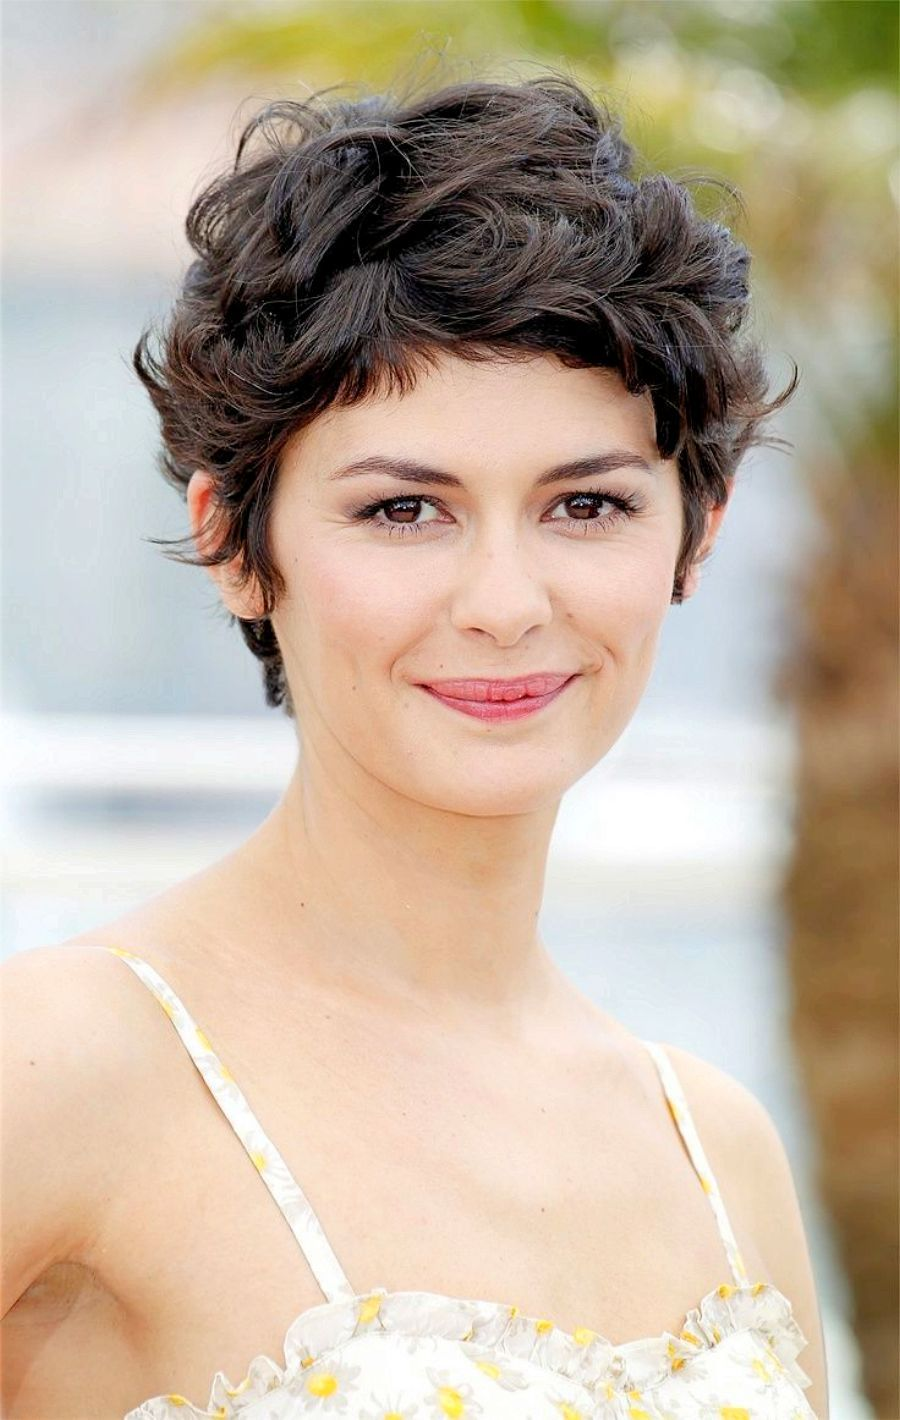 Beach waves on Pixie Audrey Tautou